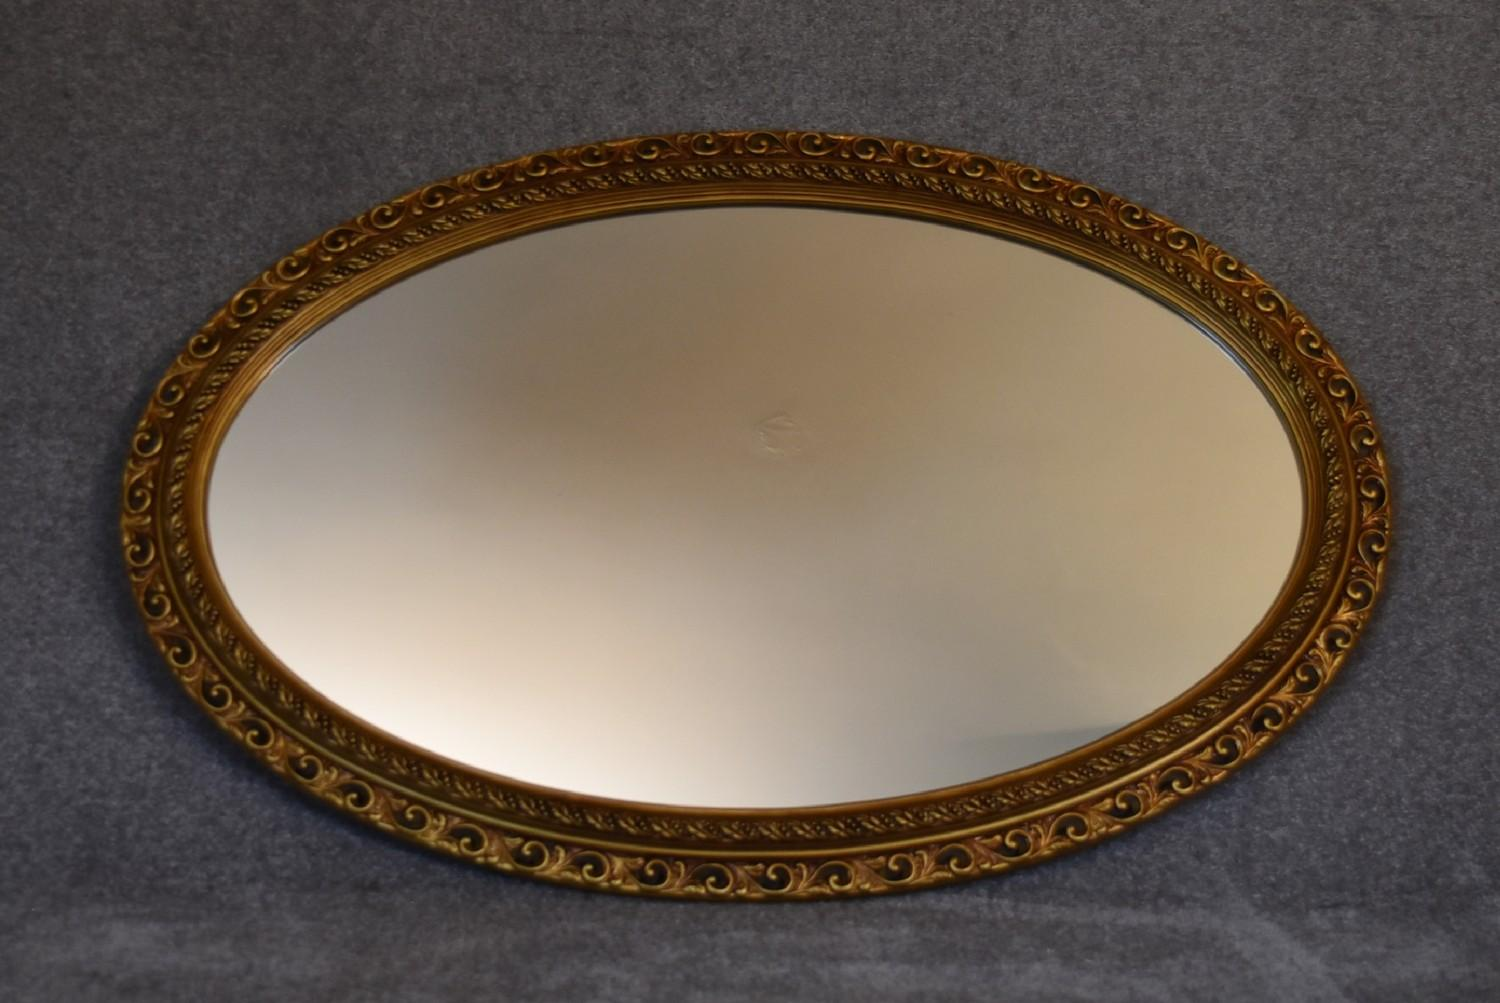 Lot 8 - A gilt framed oval wall mirror with gadrooned and floral edging. L.115cm x 75cm.